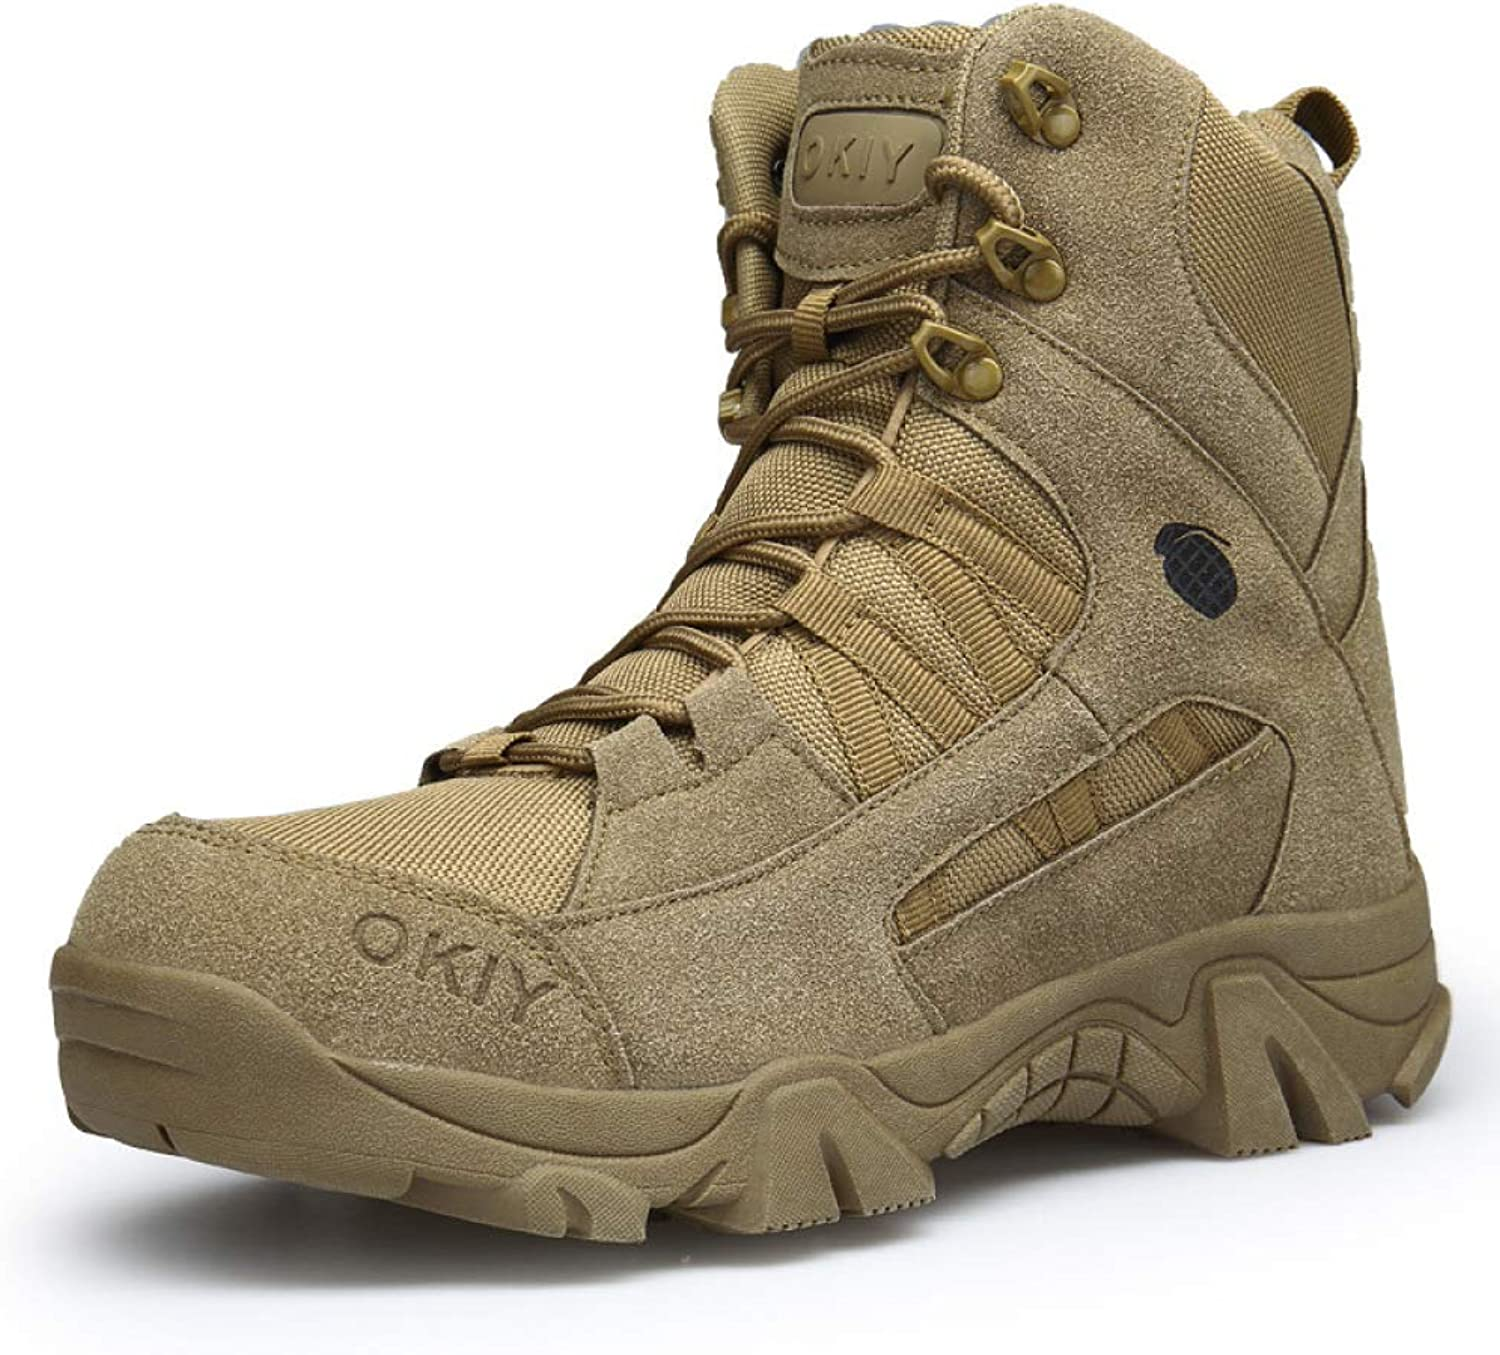 Mens Desert Armed Tactics Boots Outdoor Mountaineering Lace-Up Leather Footwear Jungle Military Army Police Combat shoes